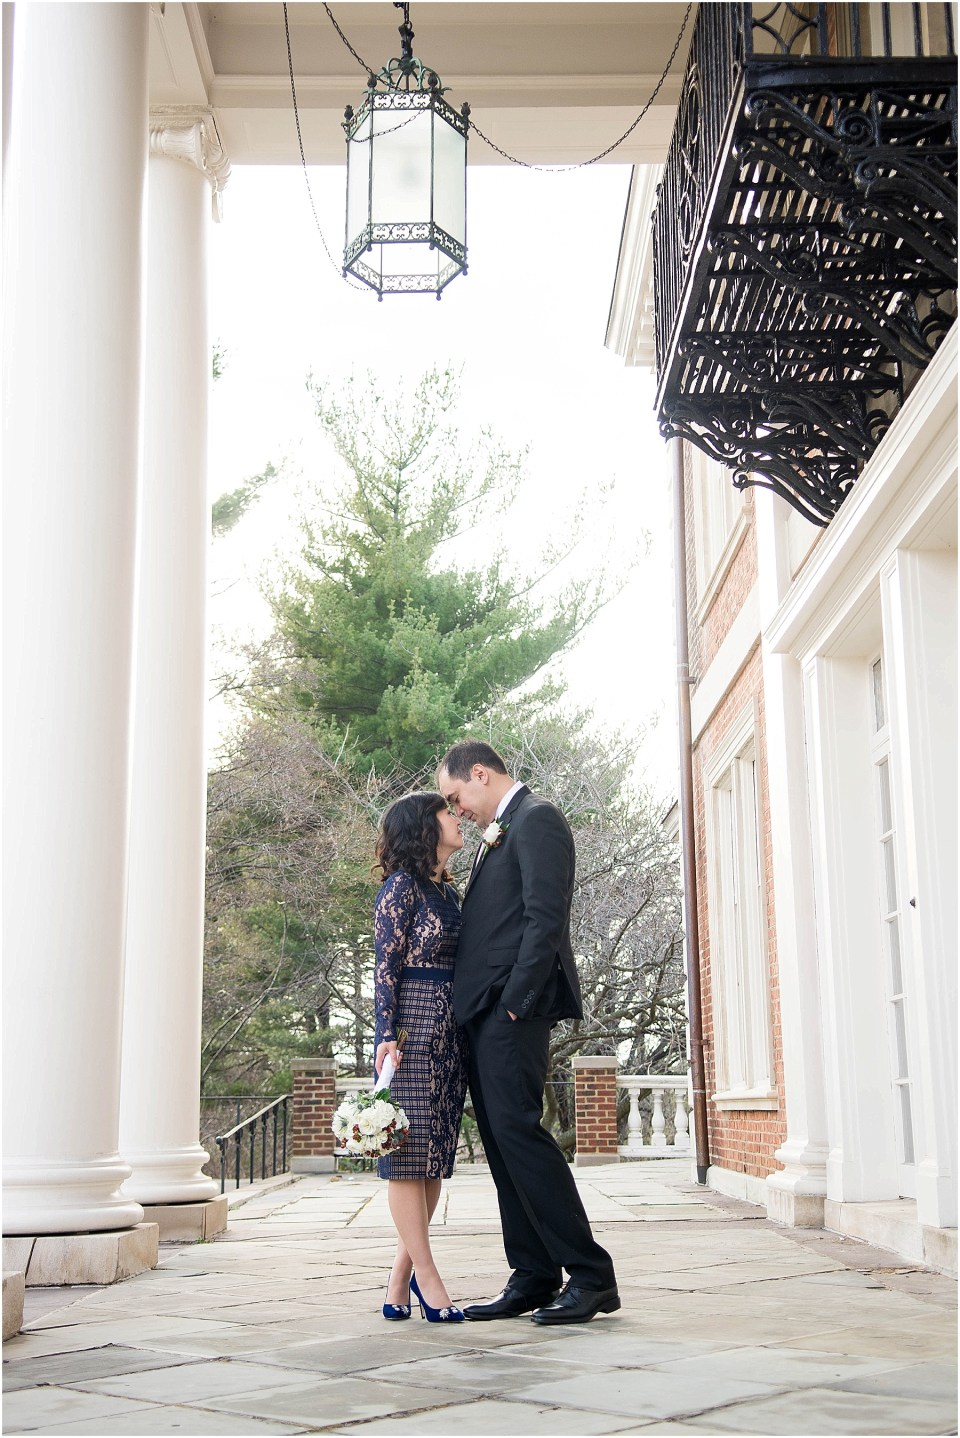 Small intimate wedding at Mansion at Strathmore | Ana Isabel Photography 36